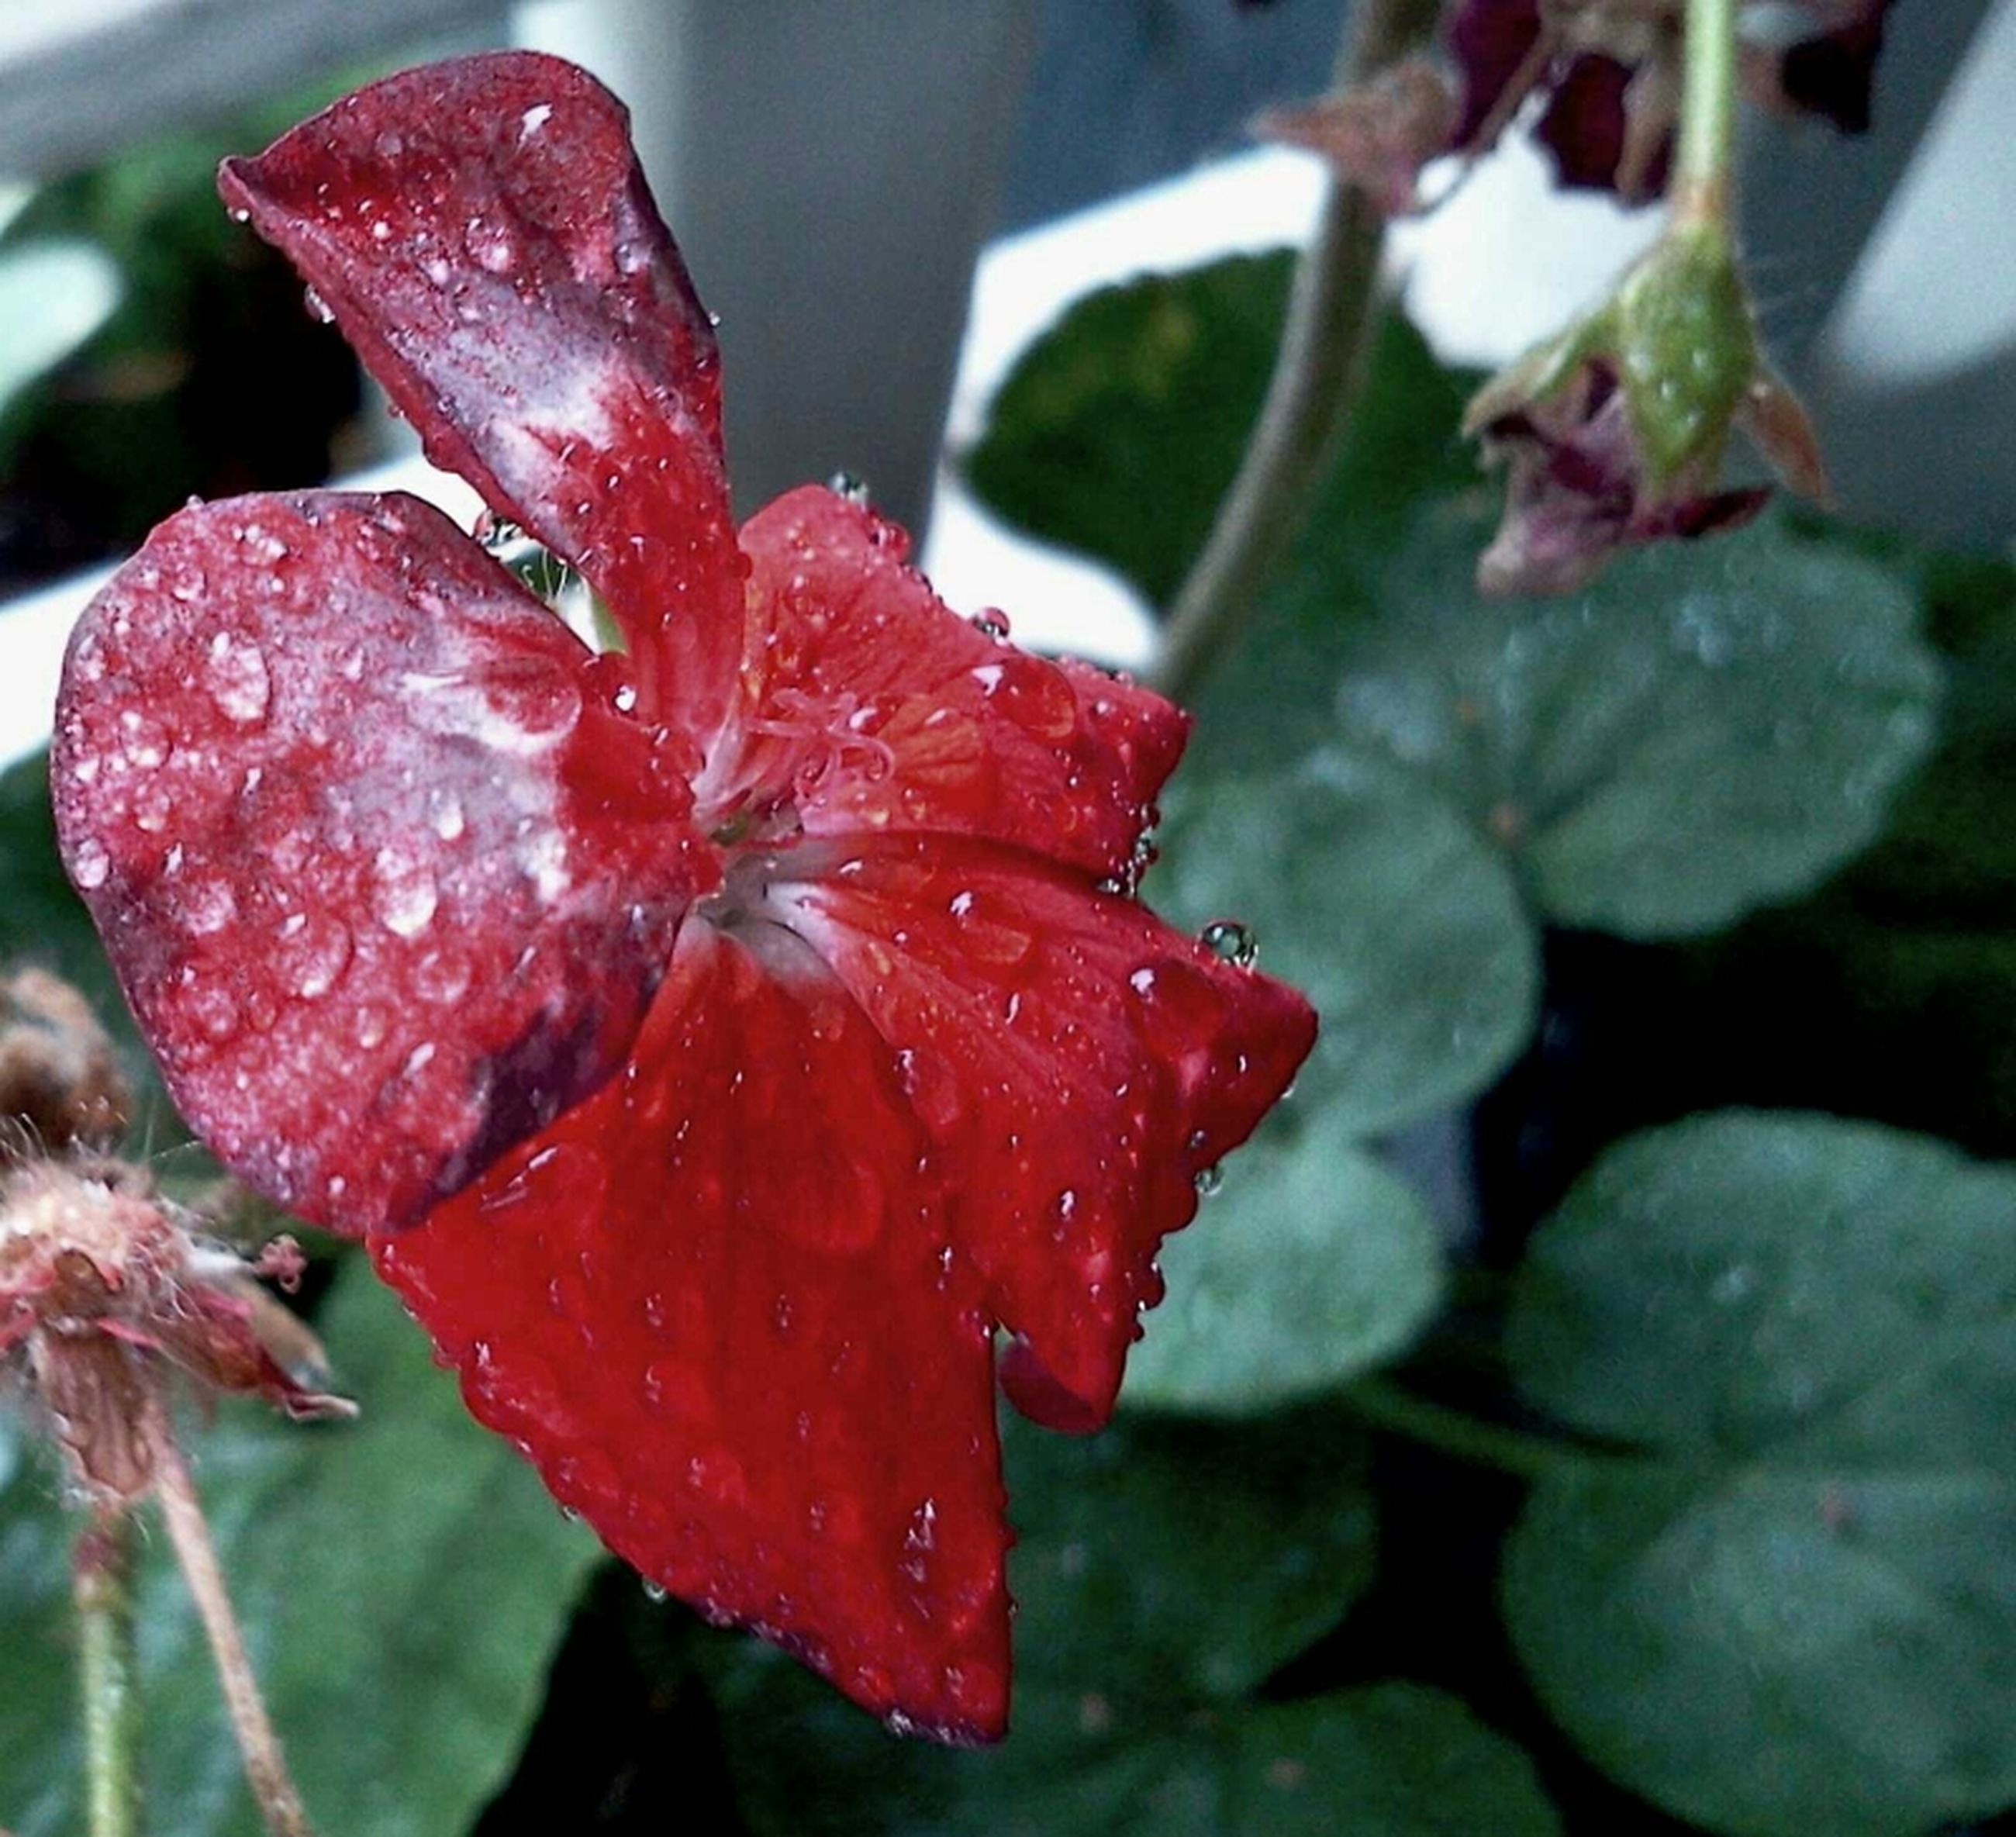 flower, freshness, drop, petal, fragility, close-up, wet, water, red, flower head, growth, focus on foreground, beauty in nature, plant, leaf, nature, blooming, dew, single flower, rain